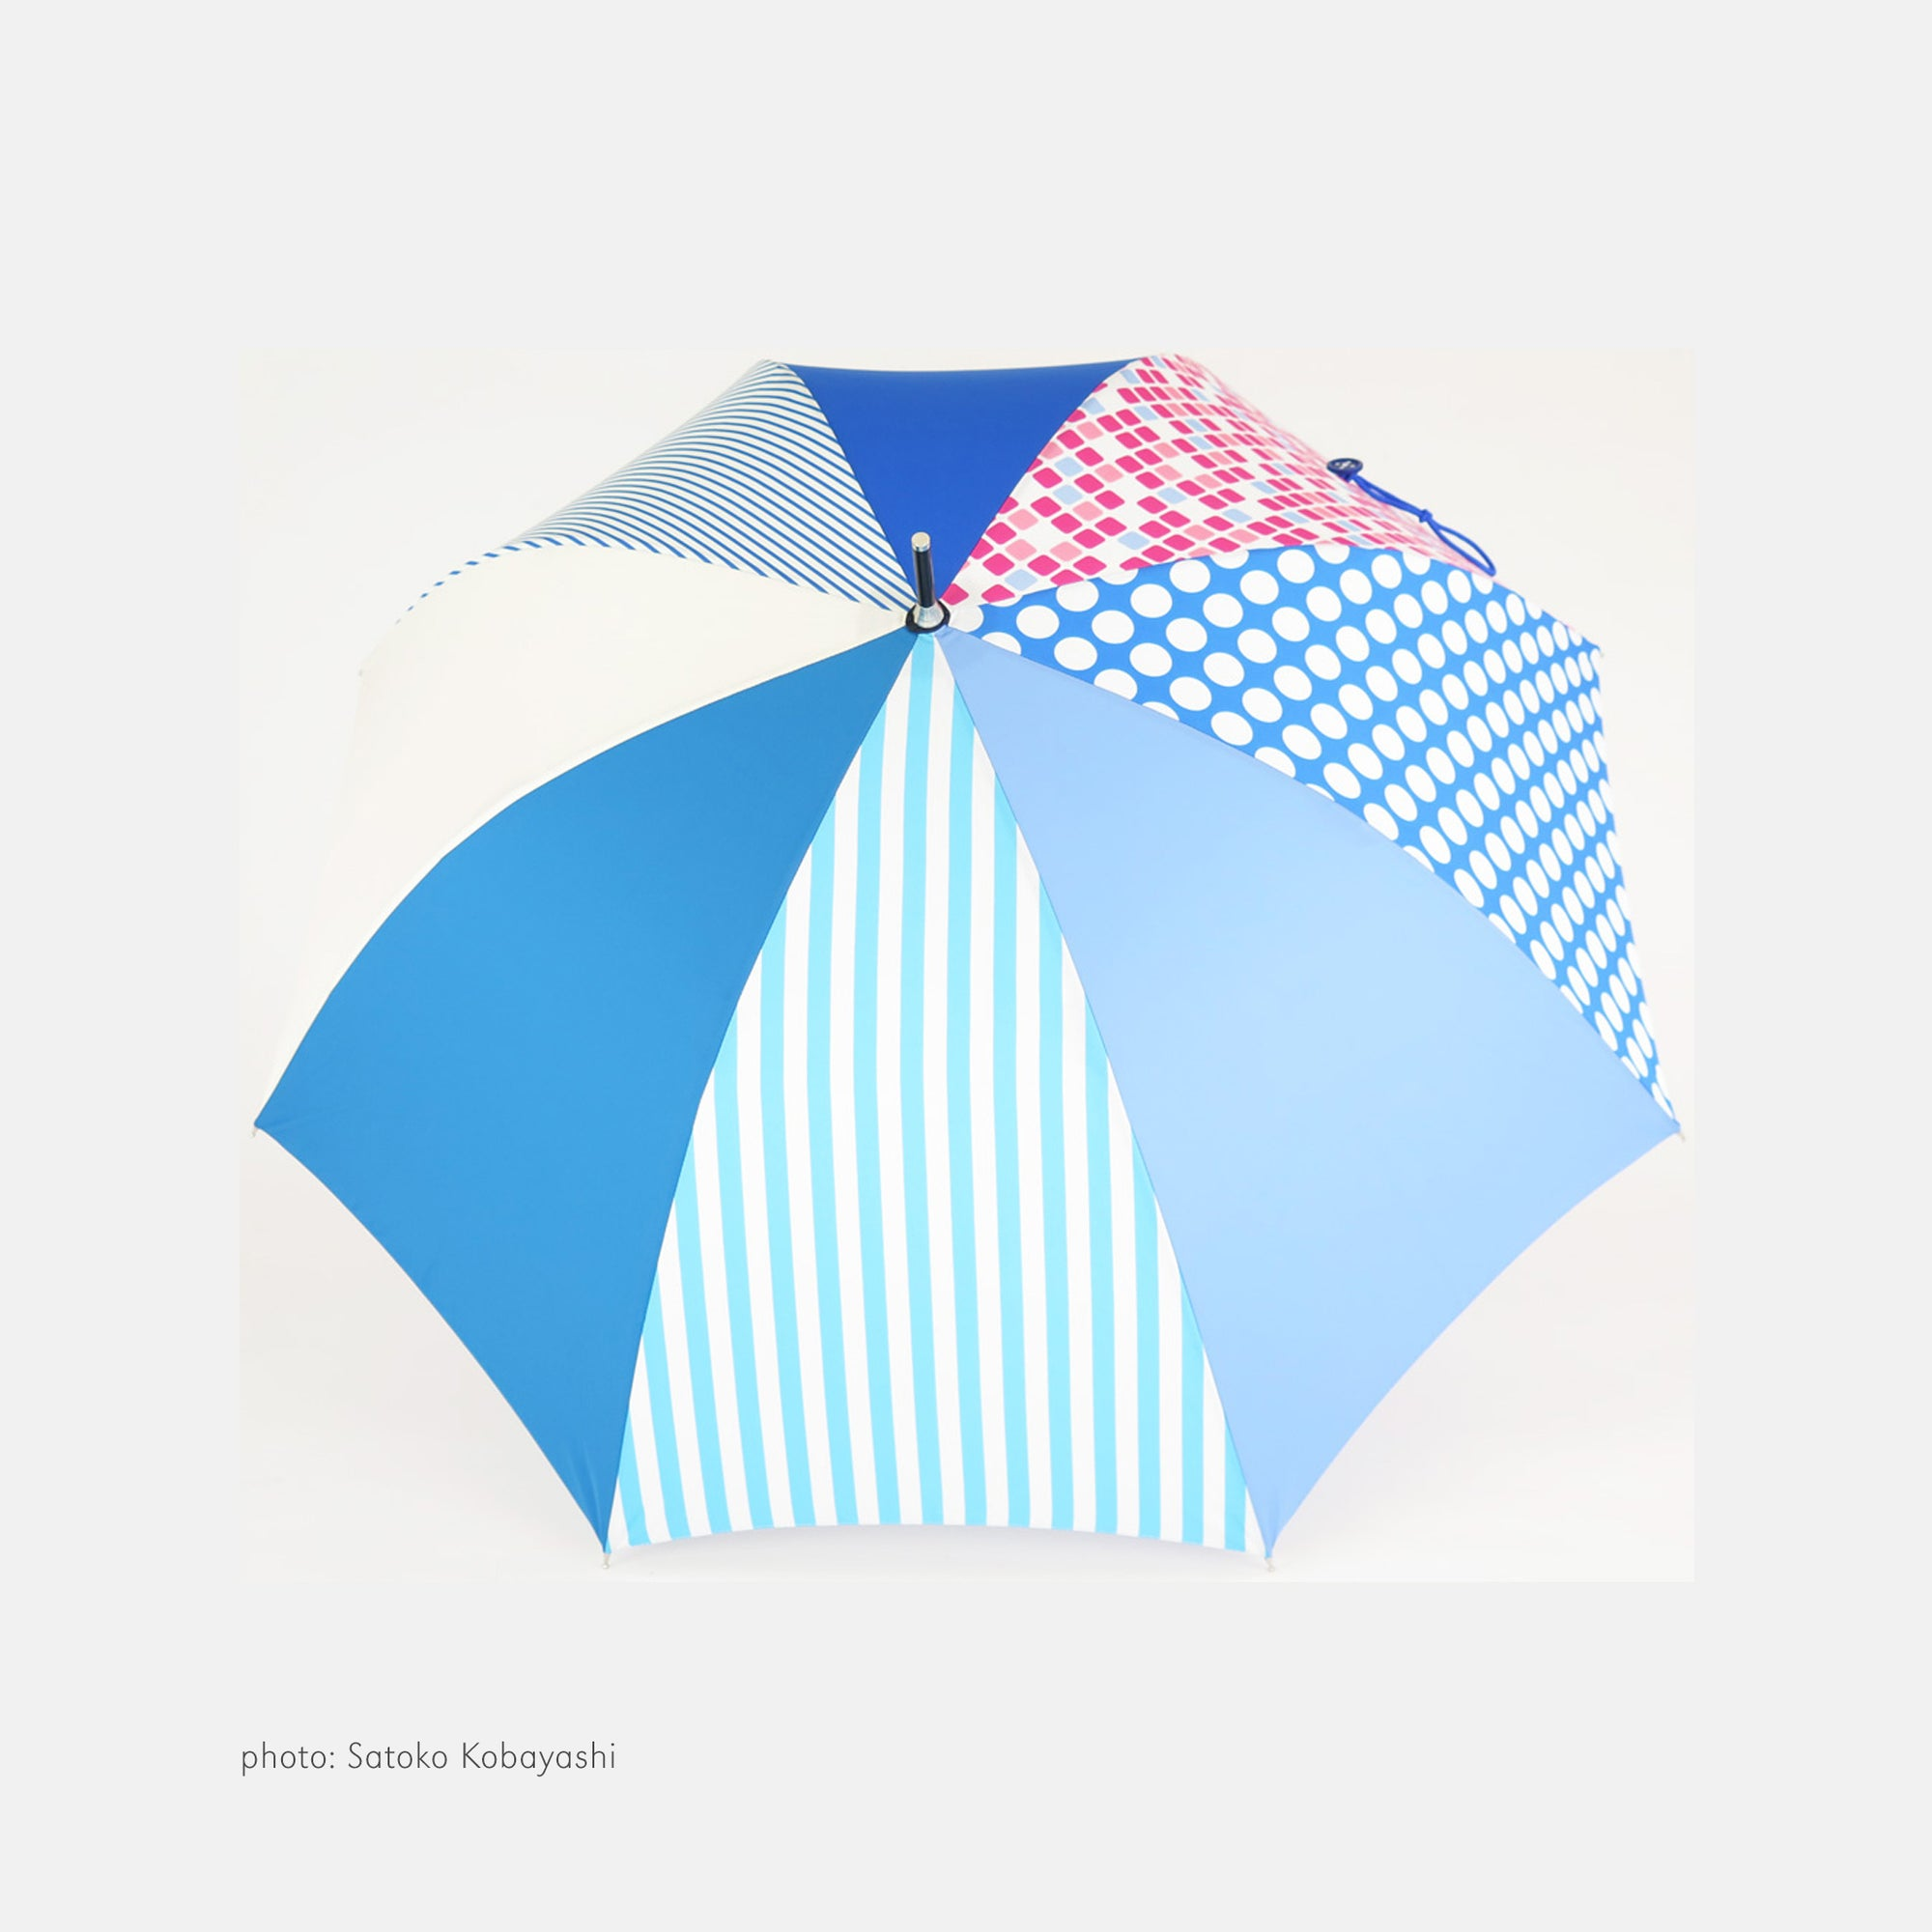 Pare Umbrella - Patchy Deux